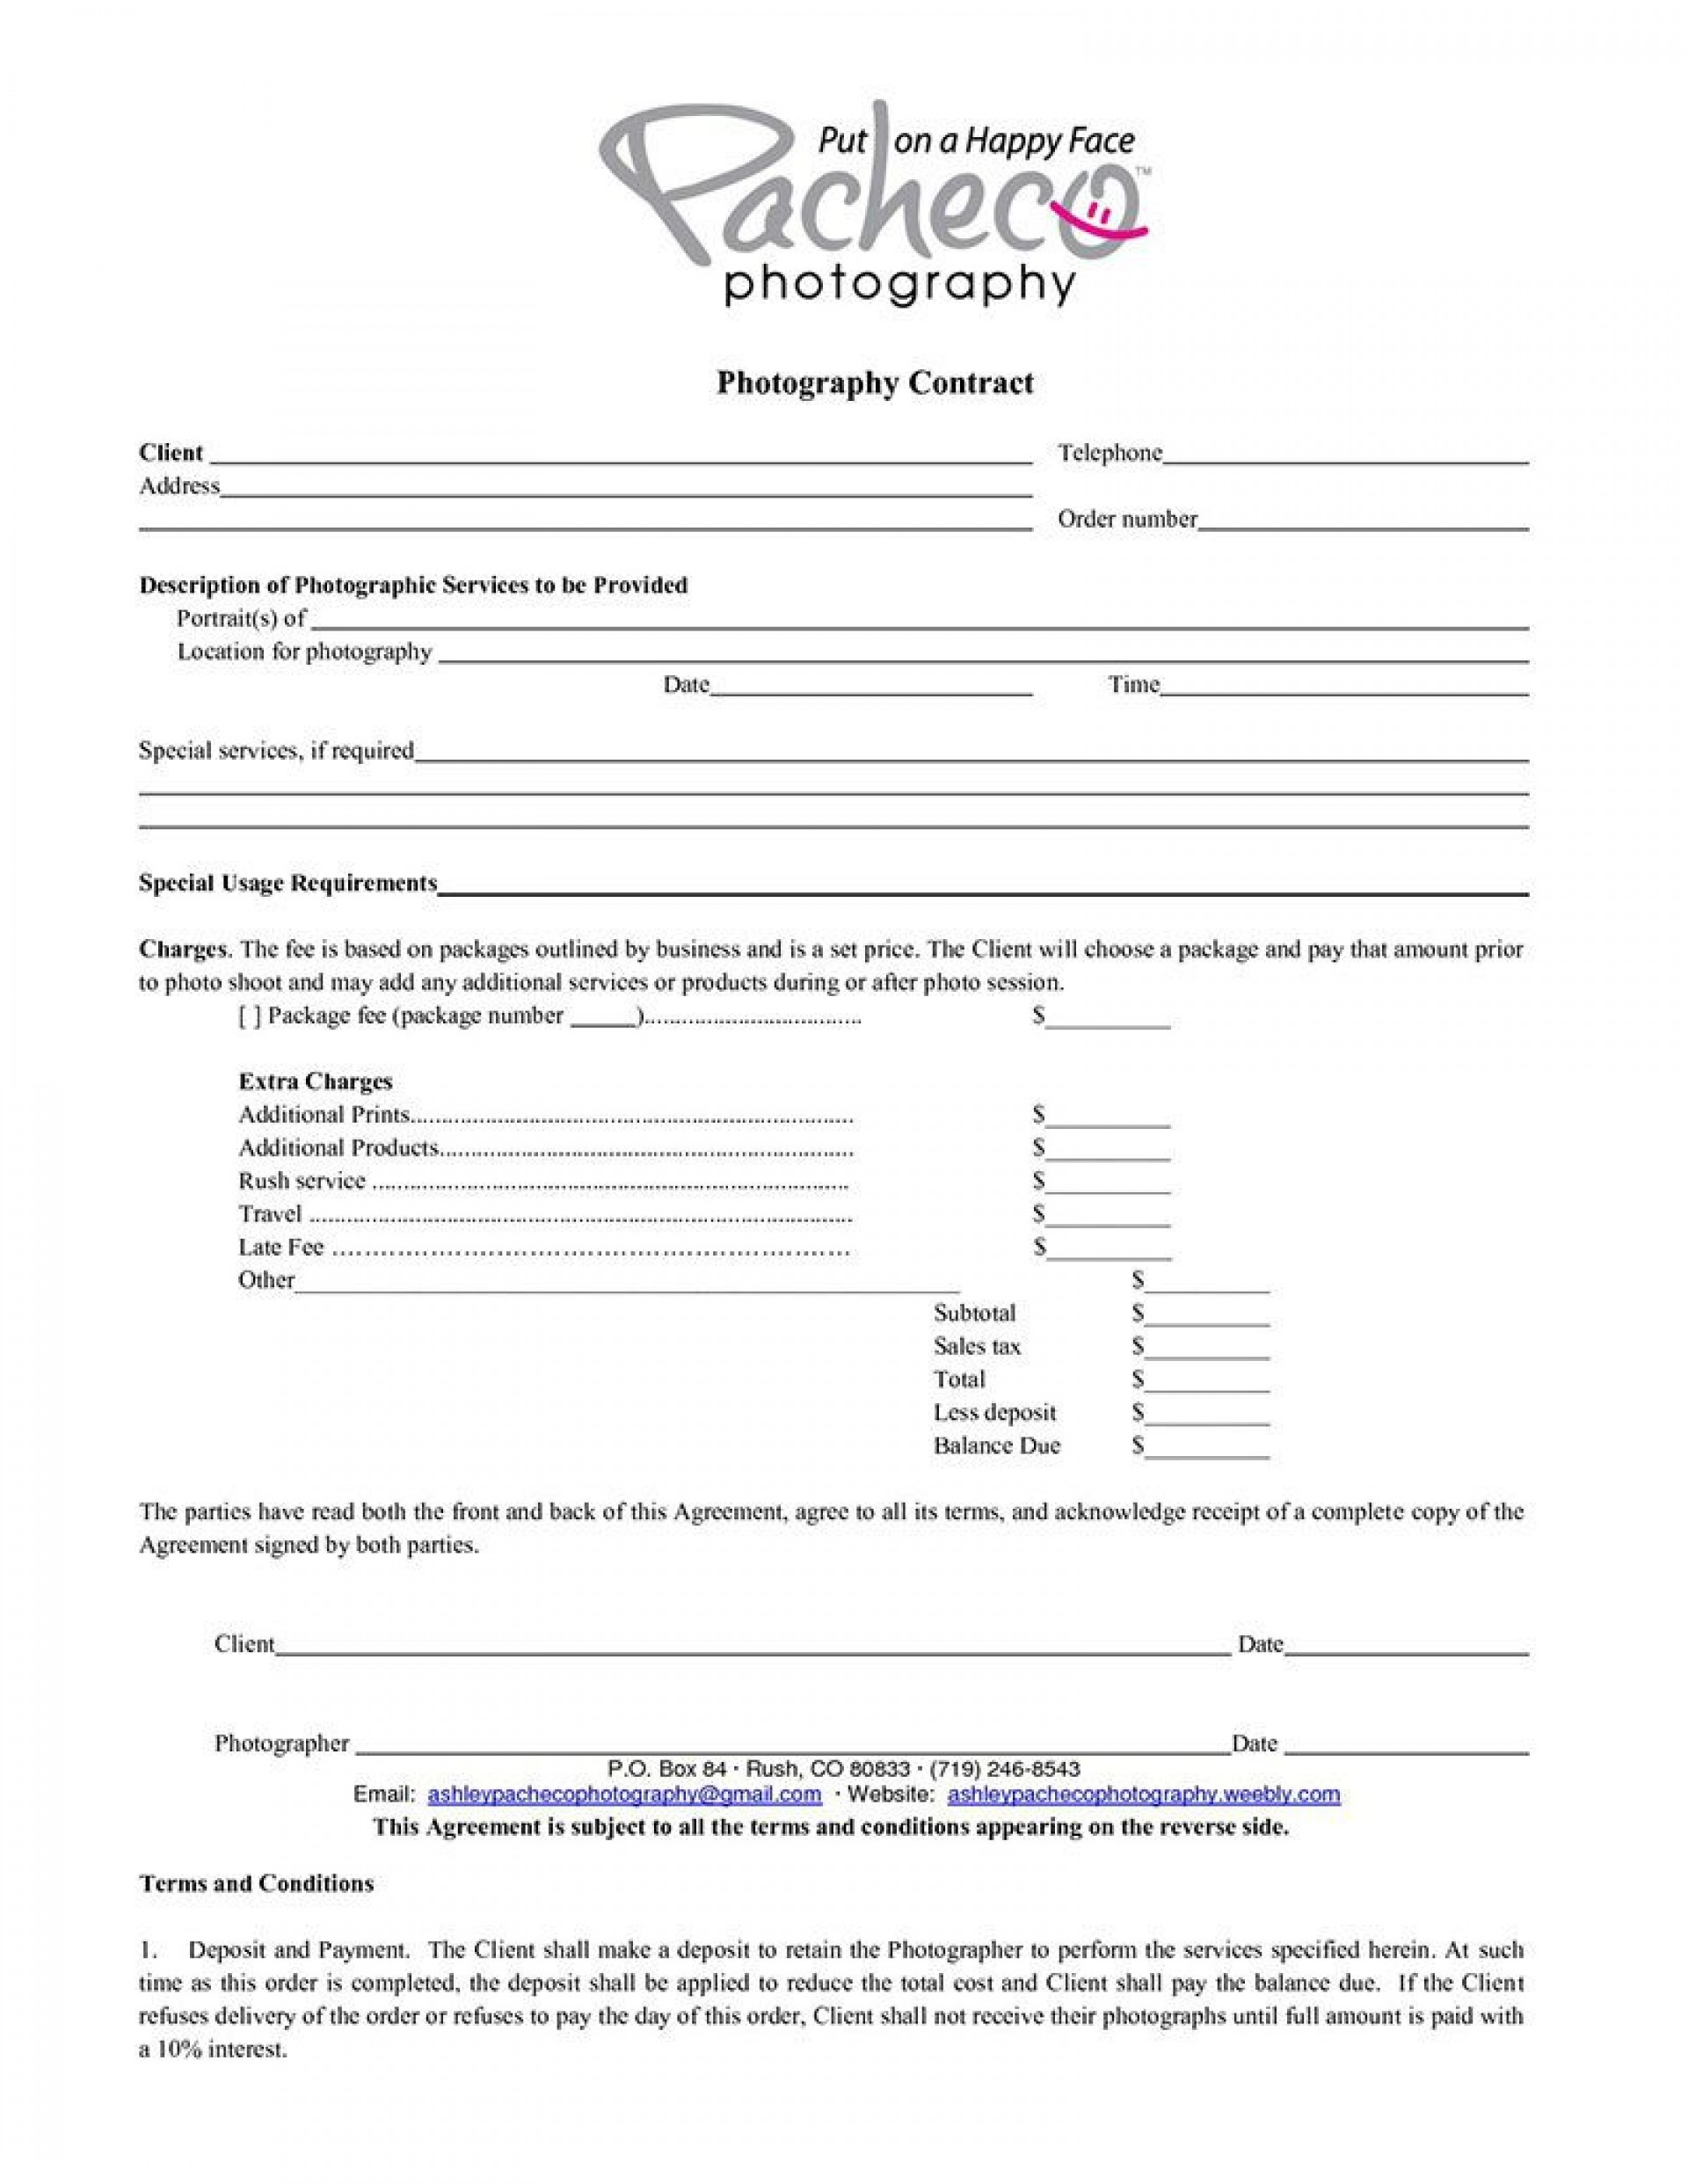 005 Unique Wedding Photography Contract Template Pdf Example 1920